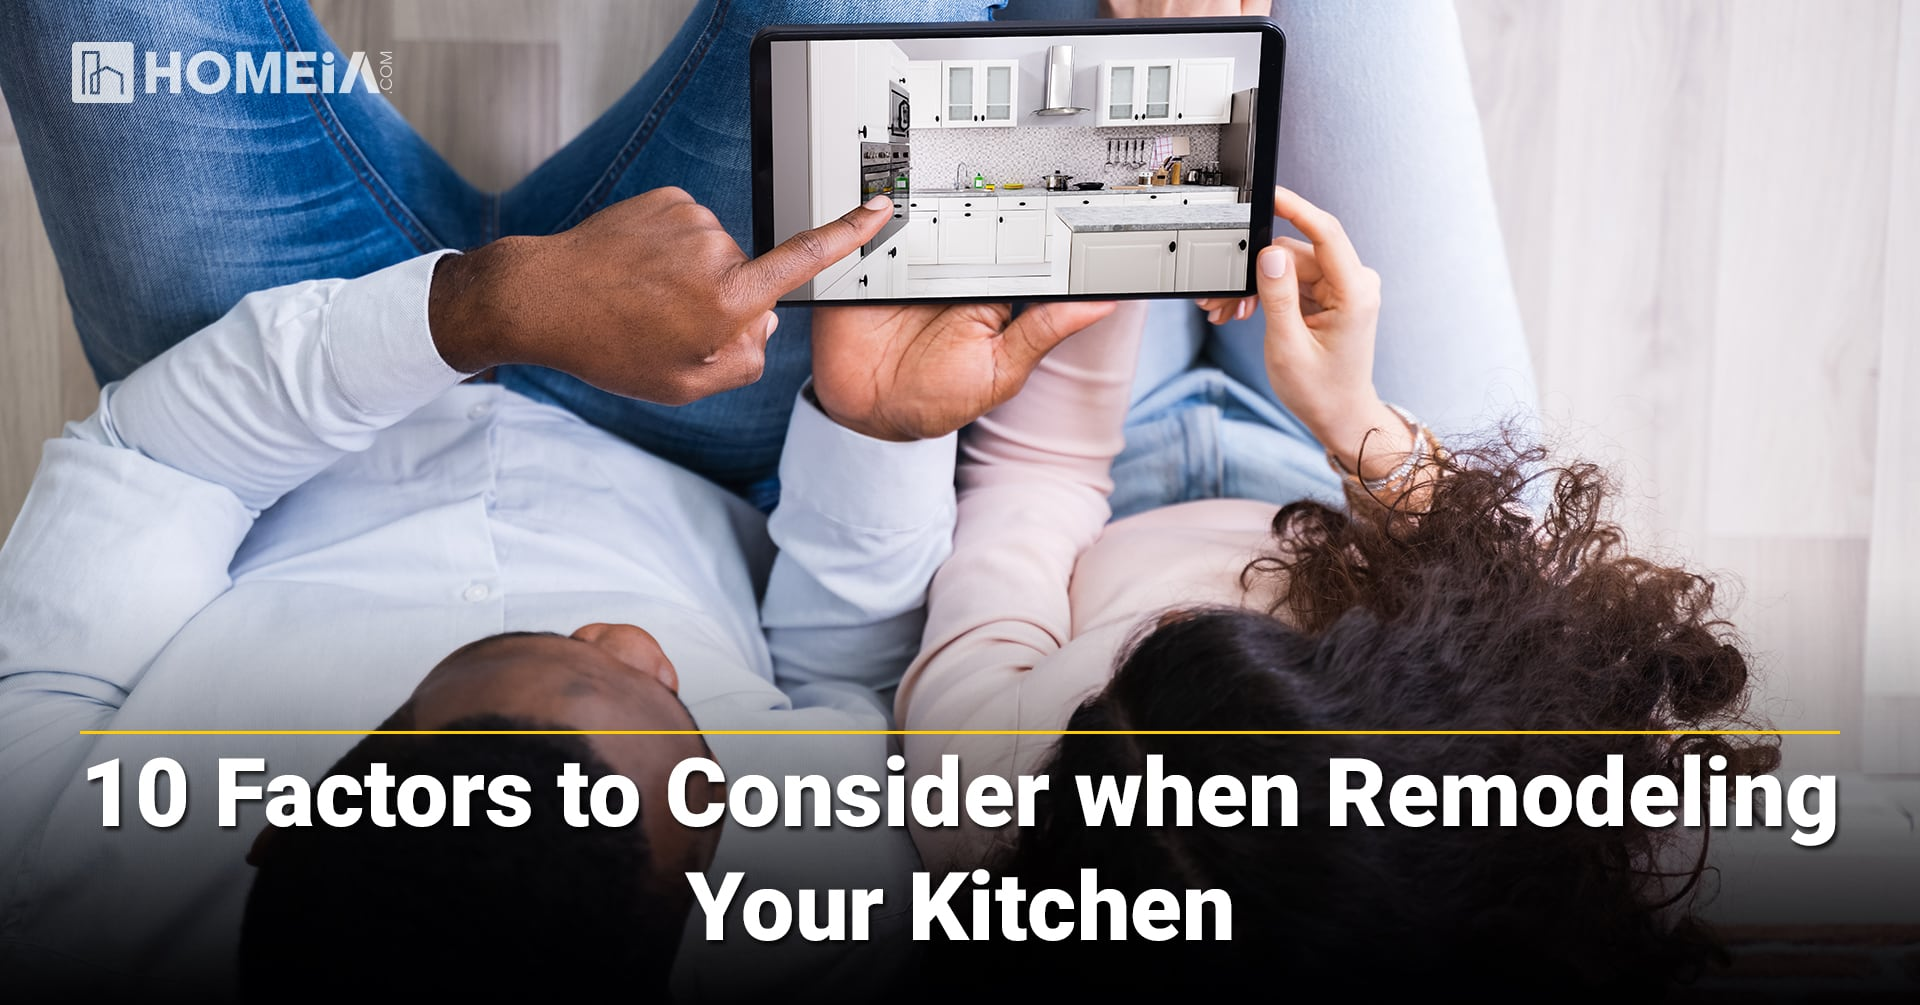 10 Factors to Consider when Remodeling Your Kitchen